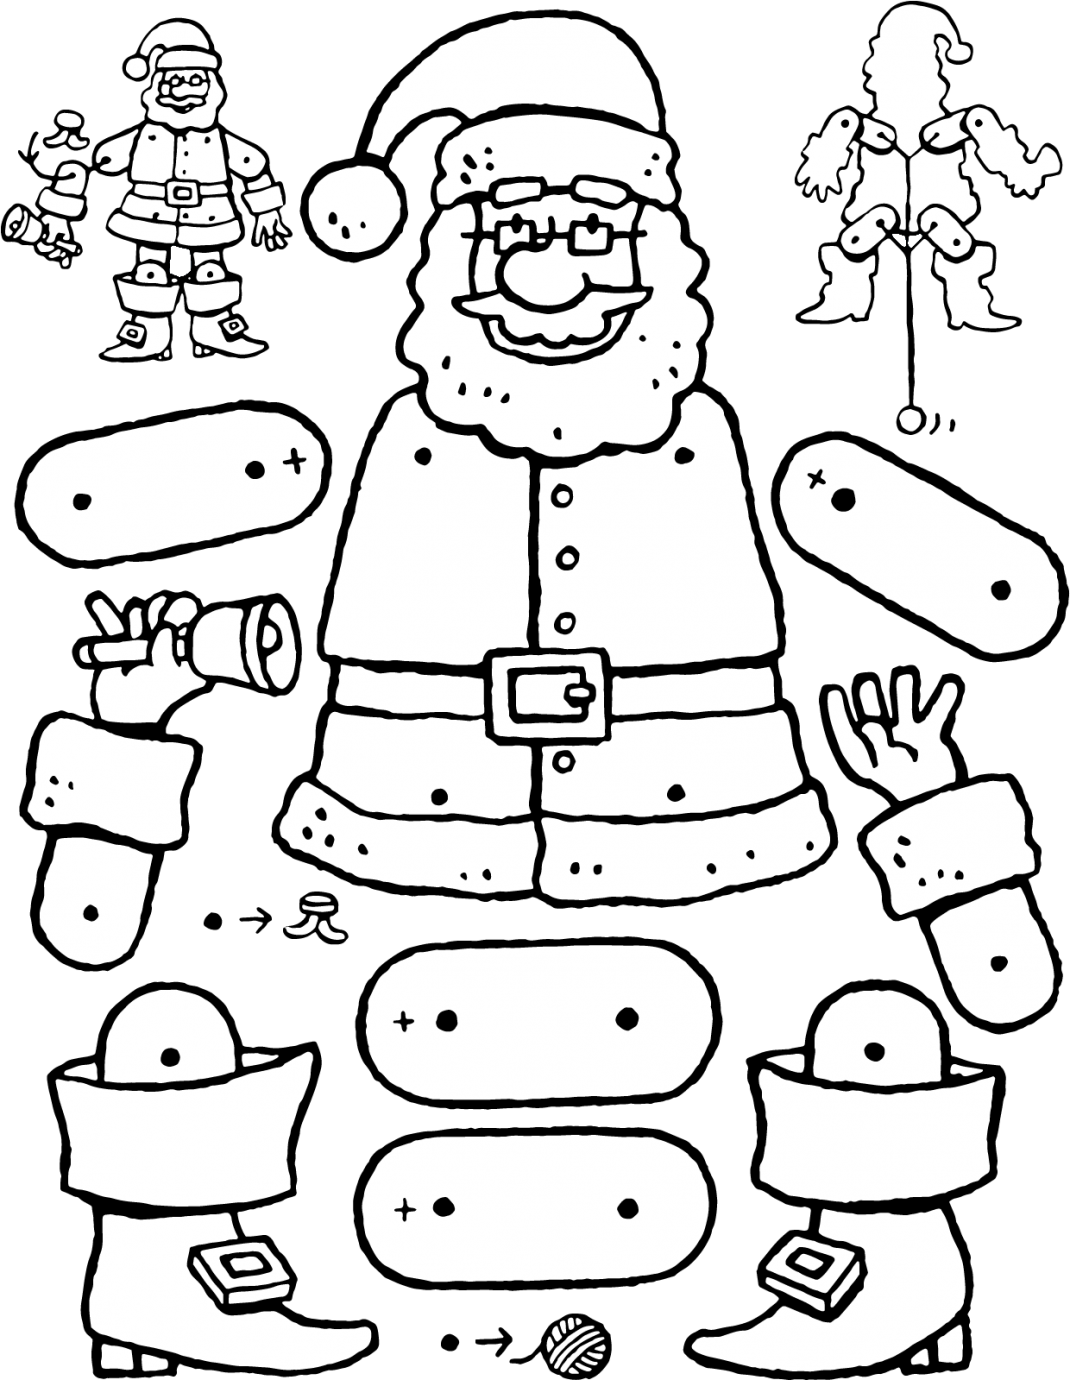 crafts dolls Father Christmas jumping jack doll colouring page drawing picture 01V